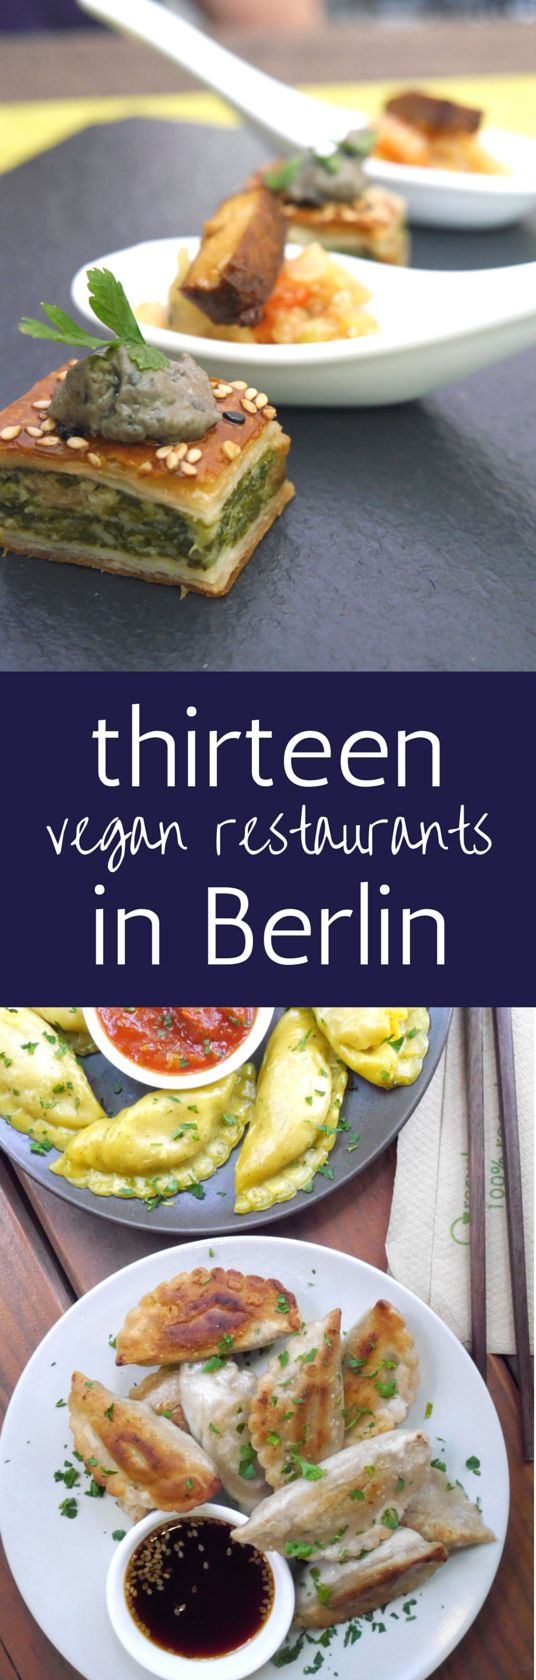 It's easy being vegan in Berlin thanks to the number of vegetarian and vegan restaurants available. Many of them are great, but here are 13 fantastic ones.